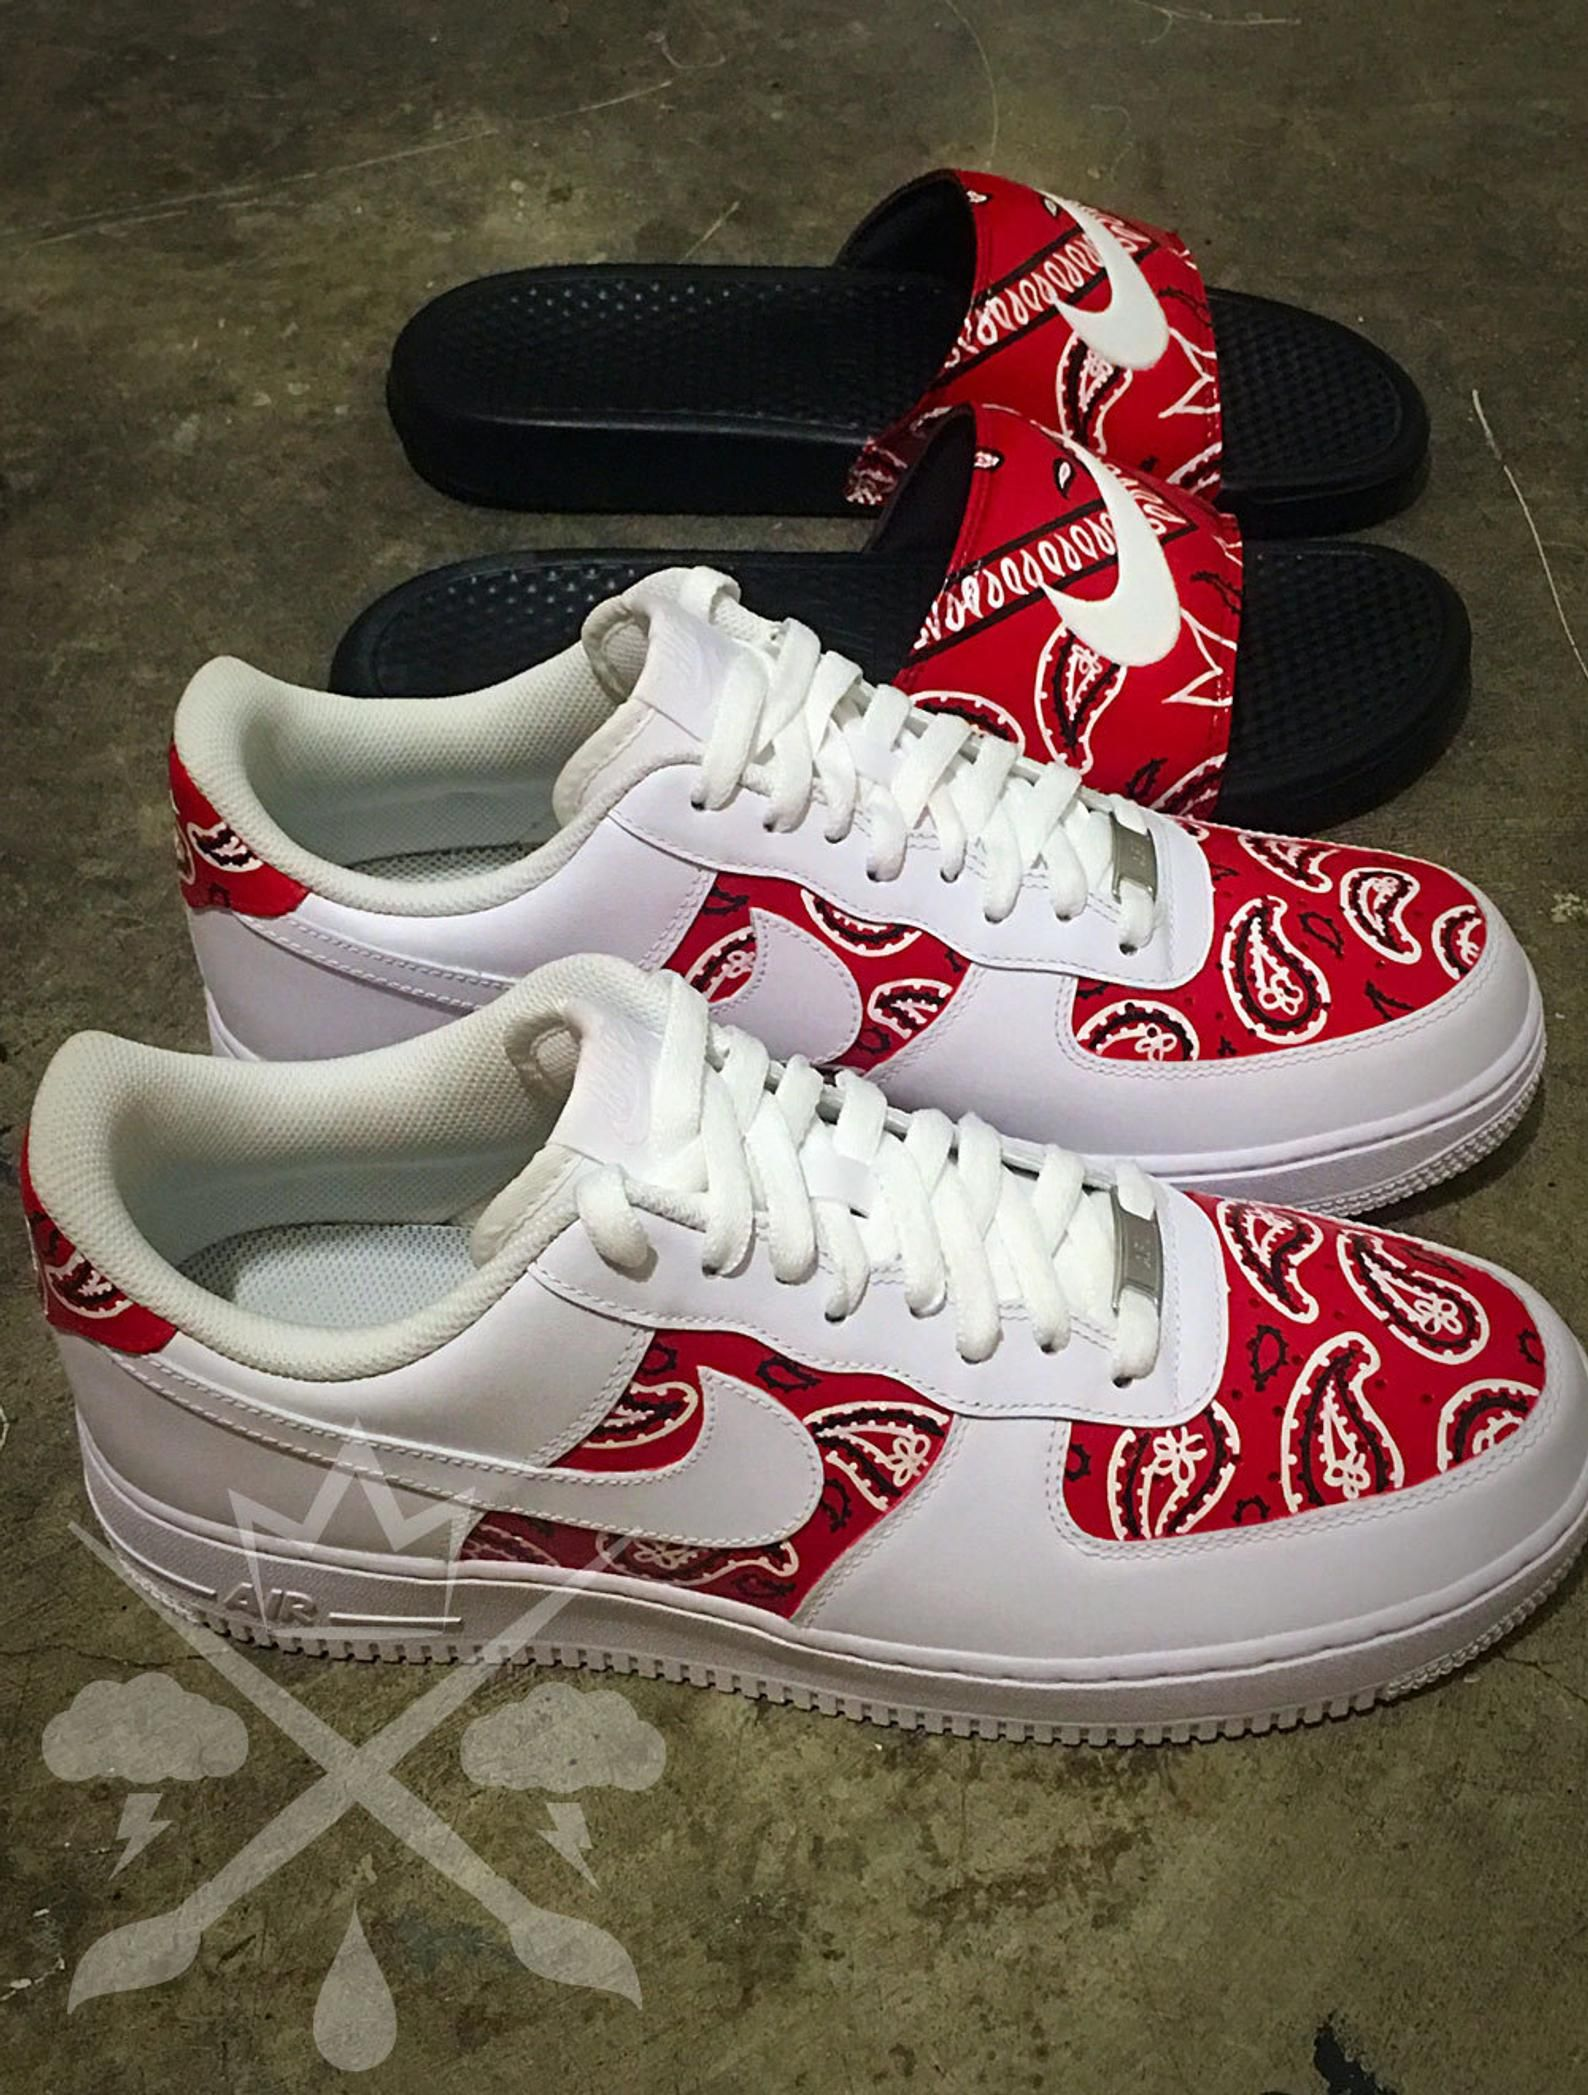 Nike Air Force One 1 Low Custom Red Bandana Men's White